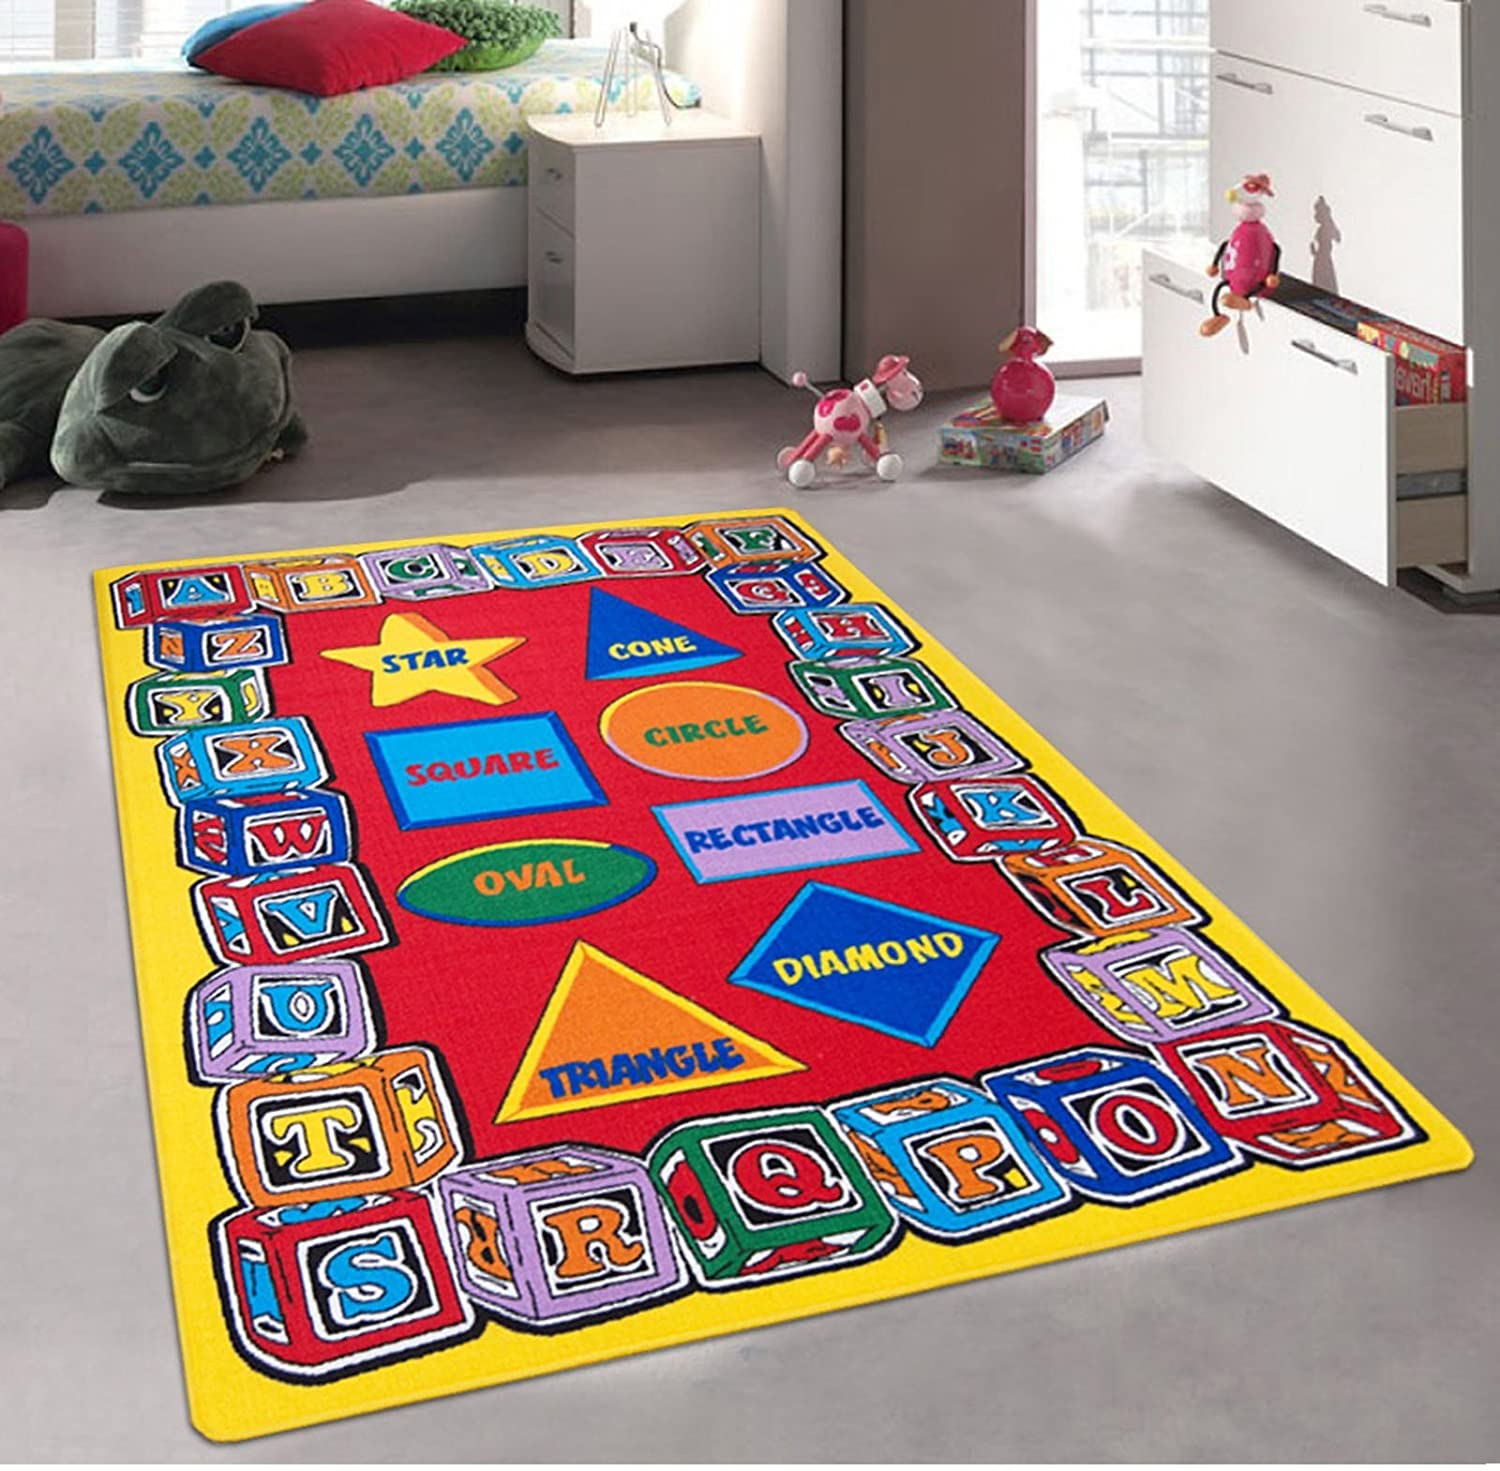 ABC Shapes - Children's 5' X 7' Area Rug Kids Nursery Carpet Play Mat